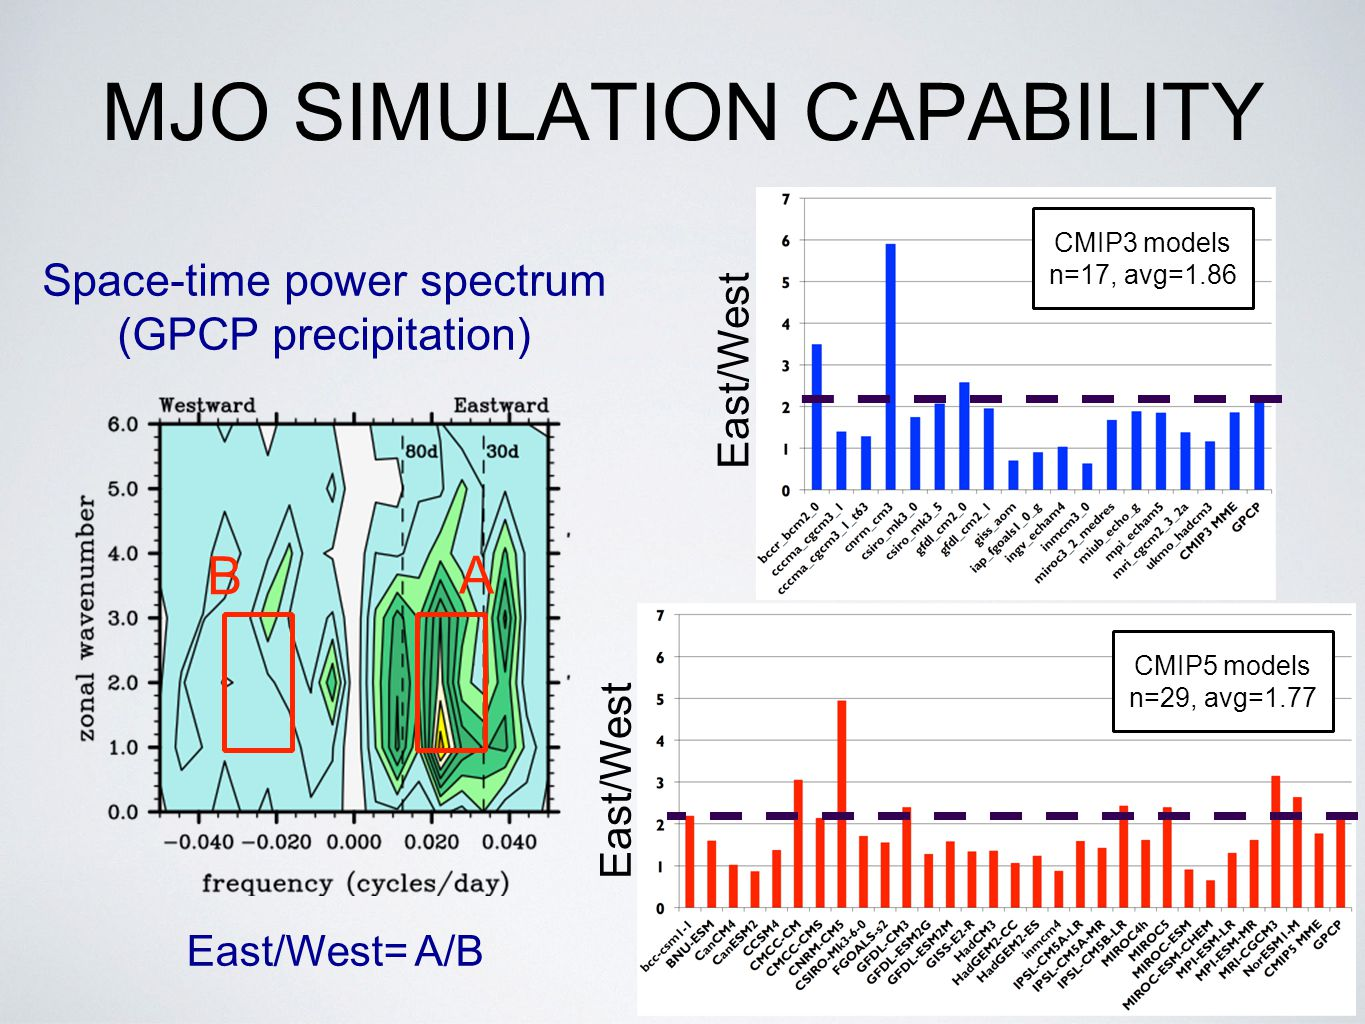 MJO SIMULATION CAPABILITY East/West= A/B Space-time power spectrum (GPCP precipitation) A B CMIP3 models n=17, avg=1.86 East/West CMIP5 models n=29, avg=1.77 East/West